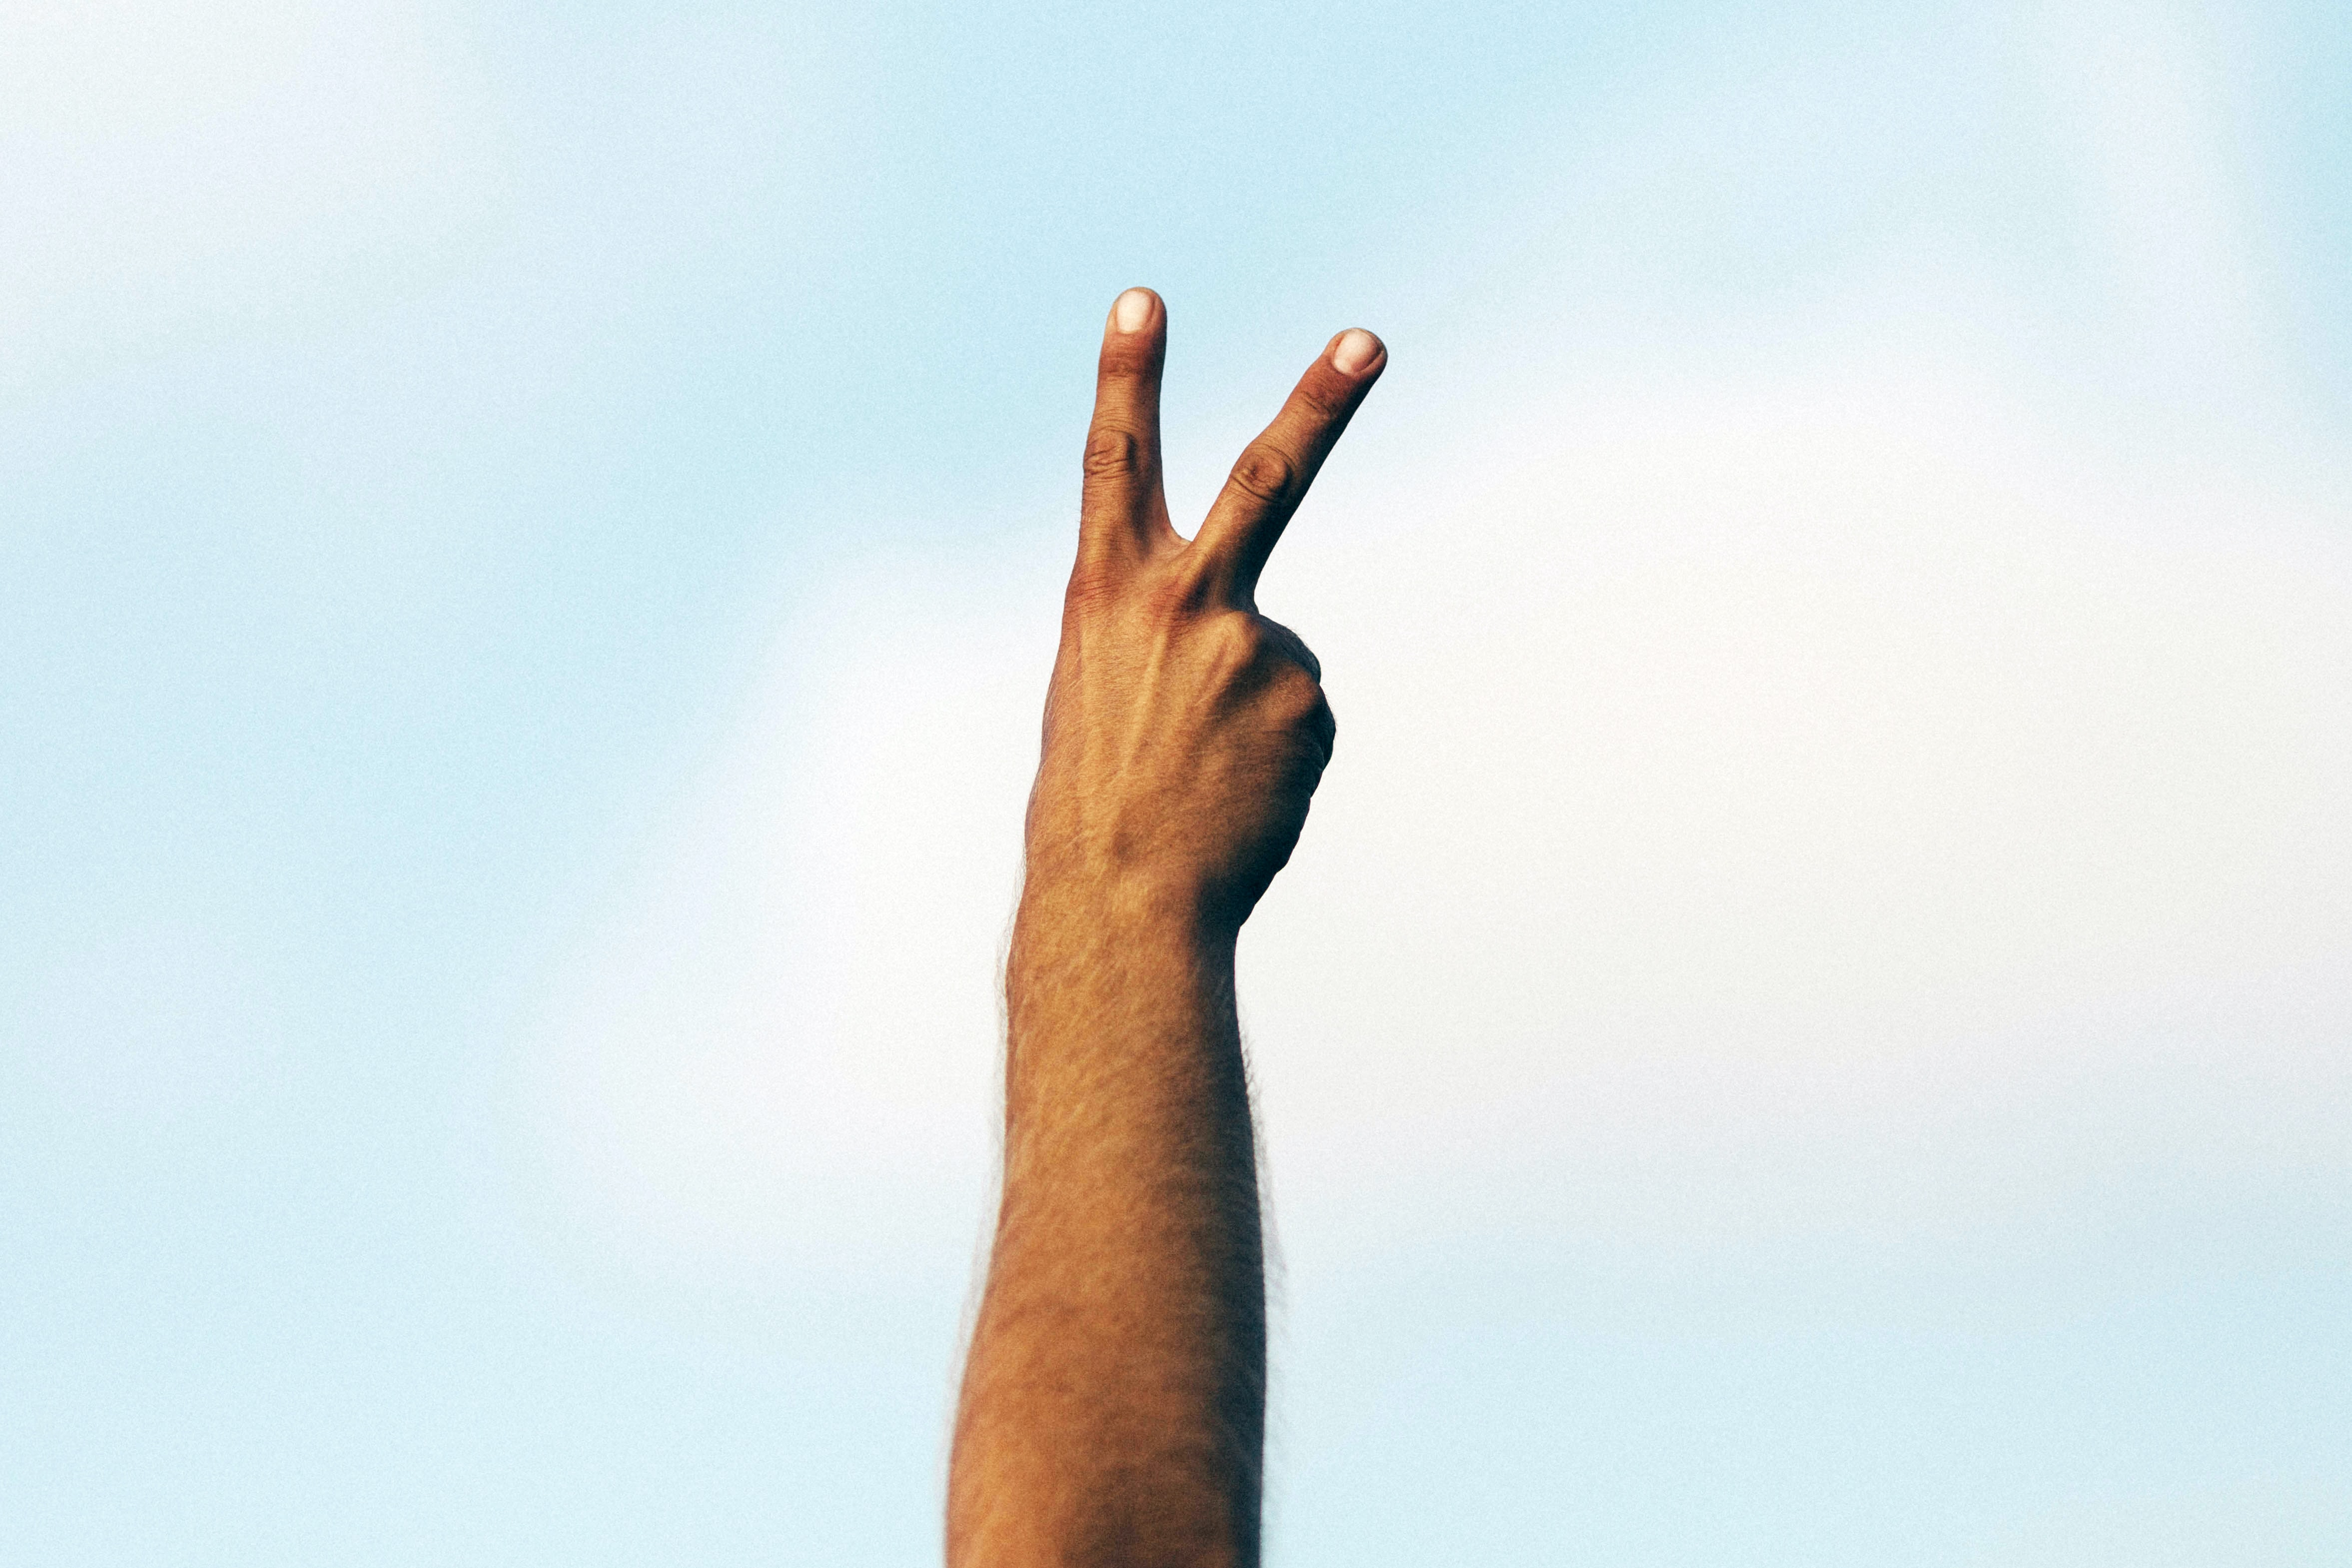 A hand with two fingers raised in a peace sign